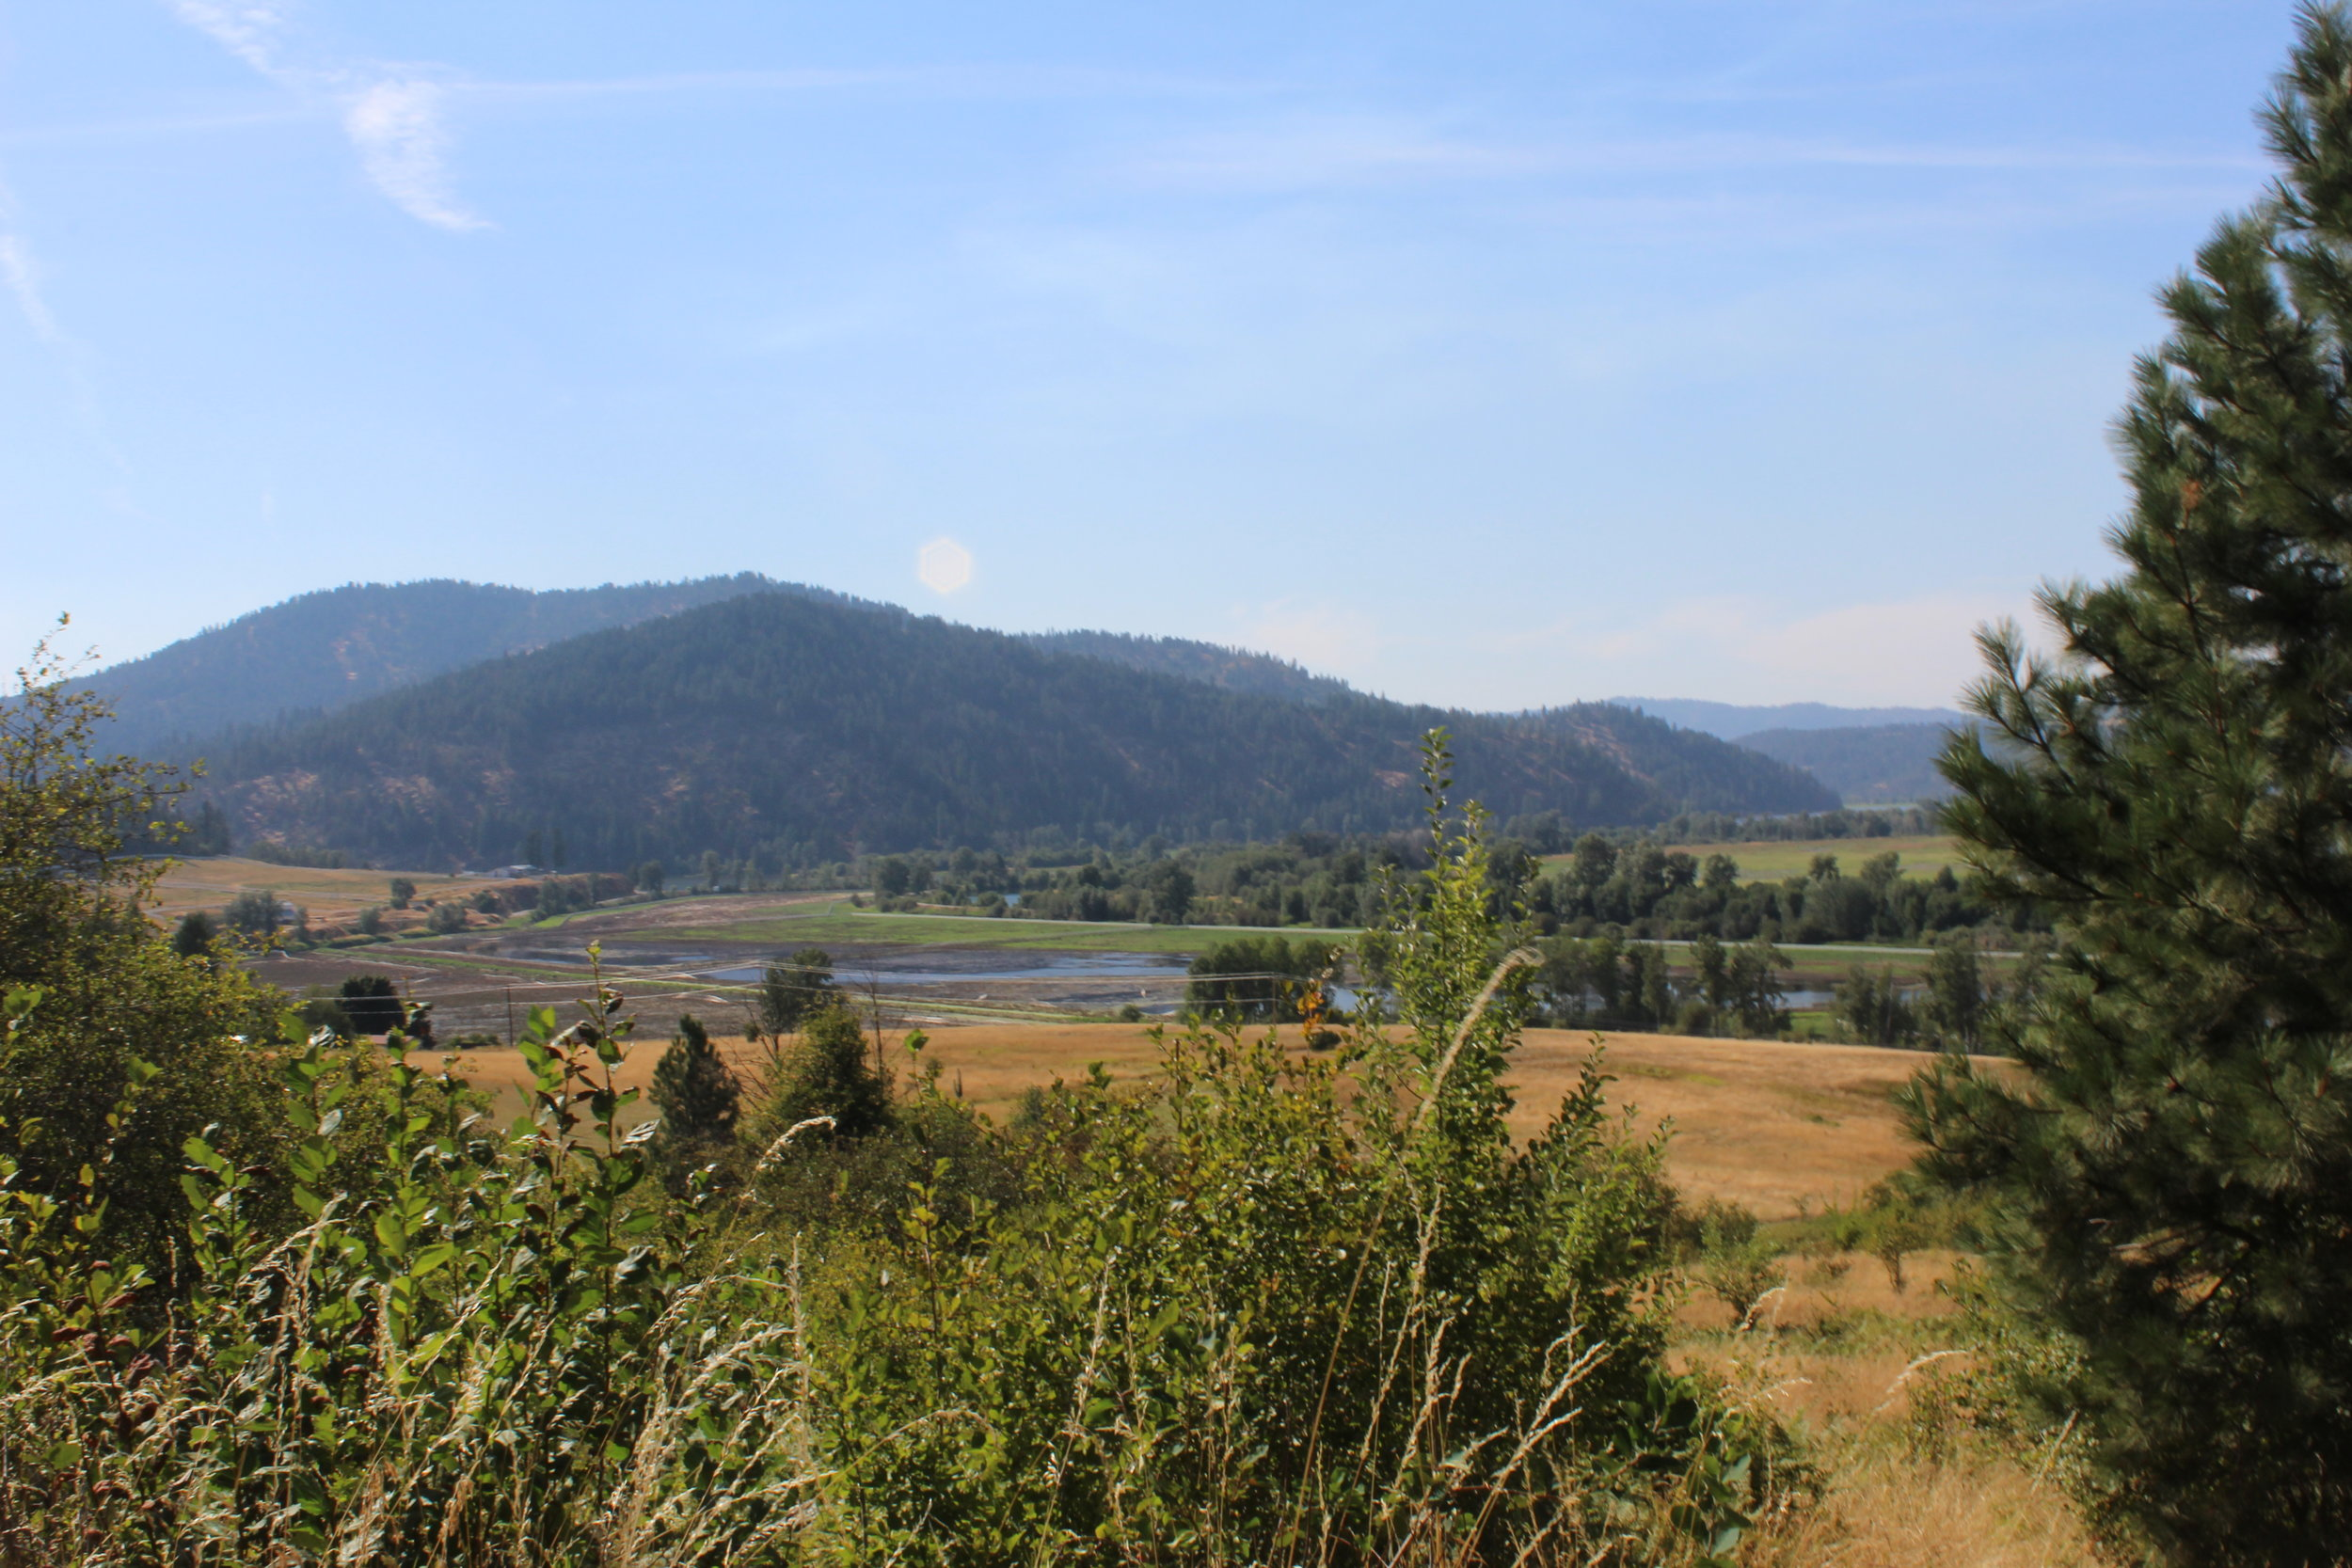 Blacks Lake along the lower Coeur d'Alene River is a marshy area where mining-contaminated sediments have accumulated.